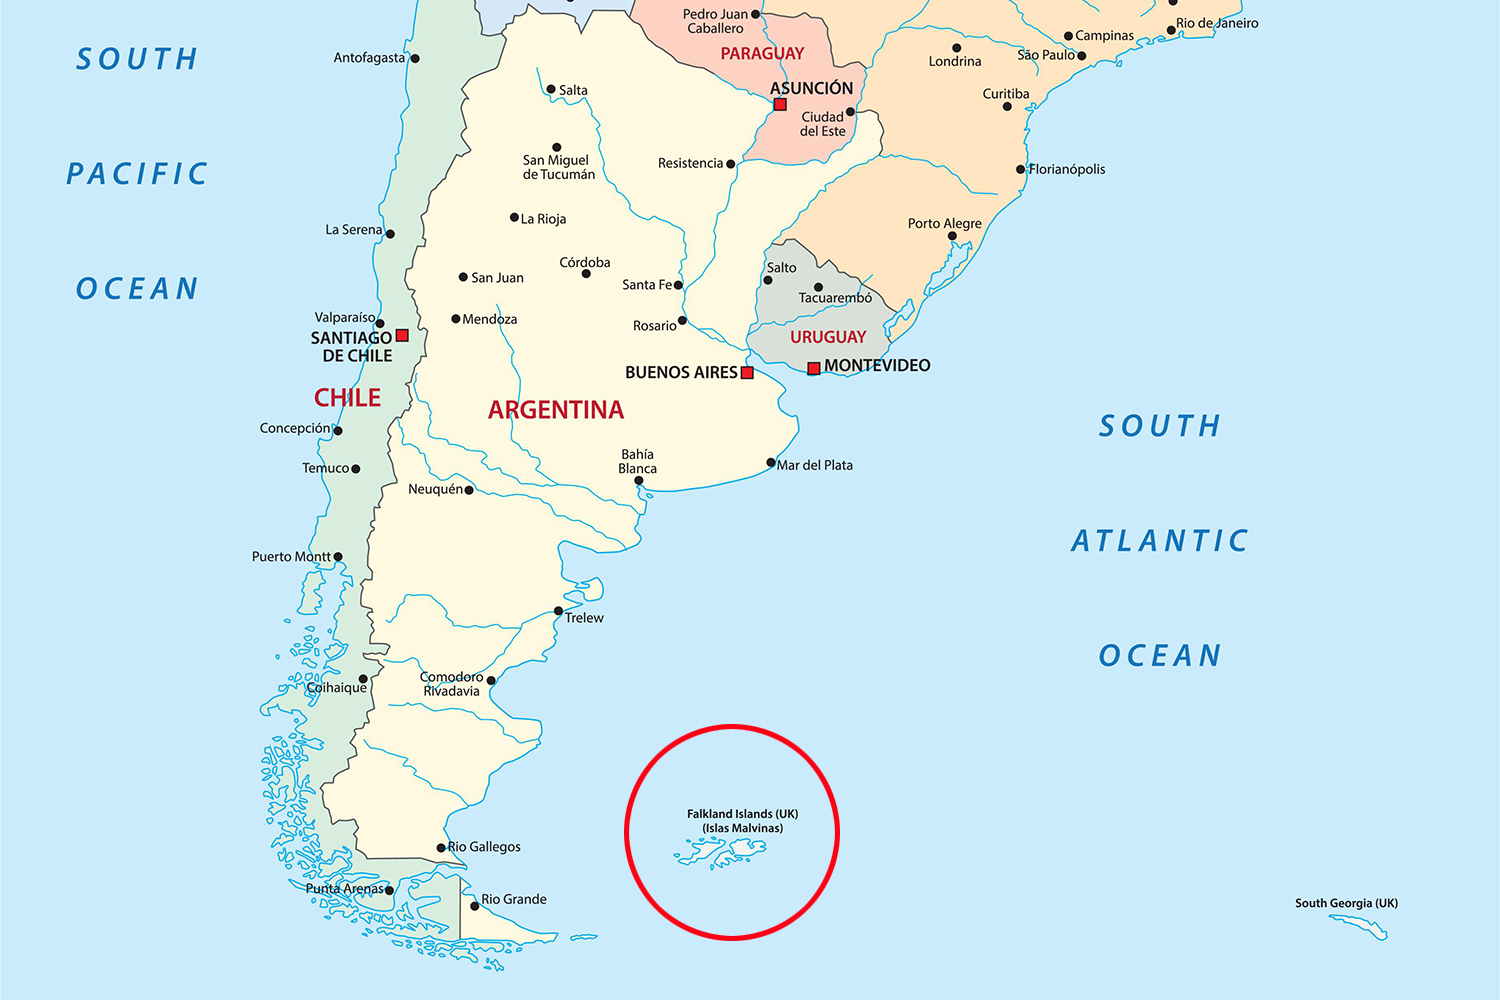 The importance of the Malvinas Islands to Brazil